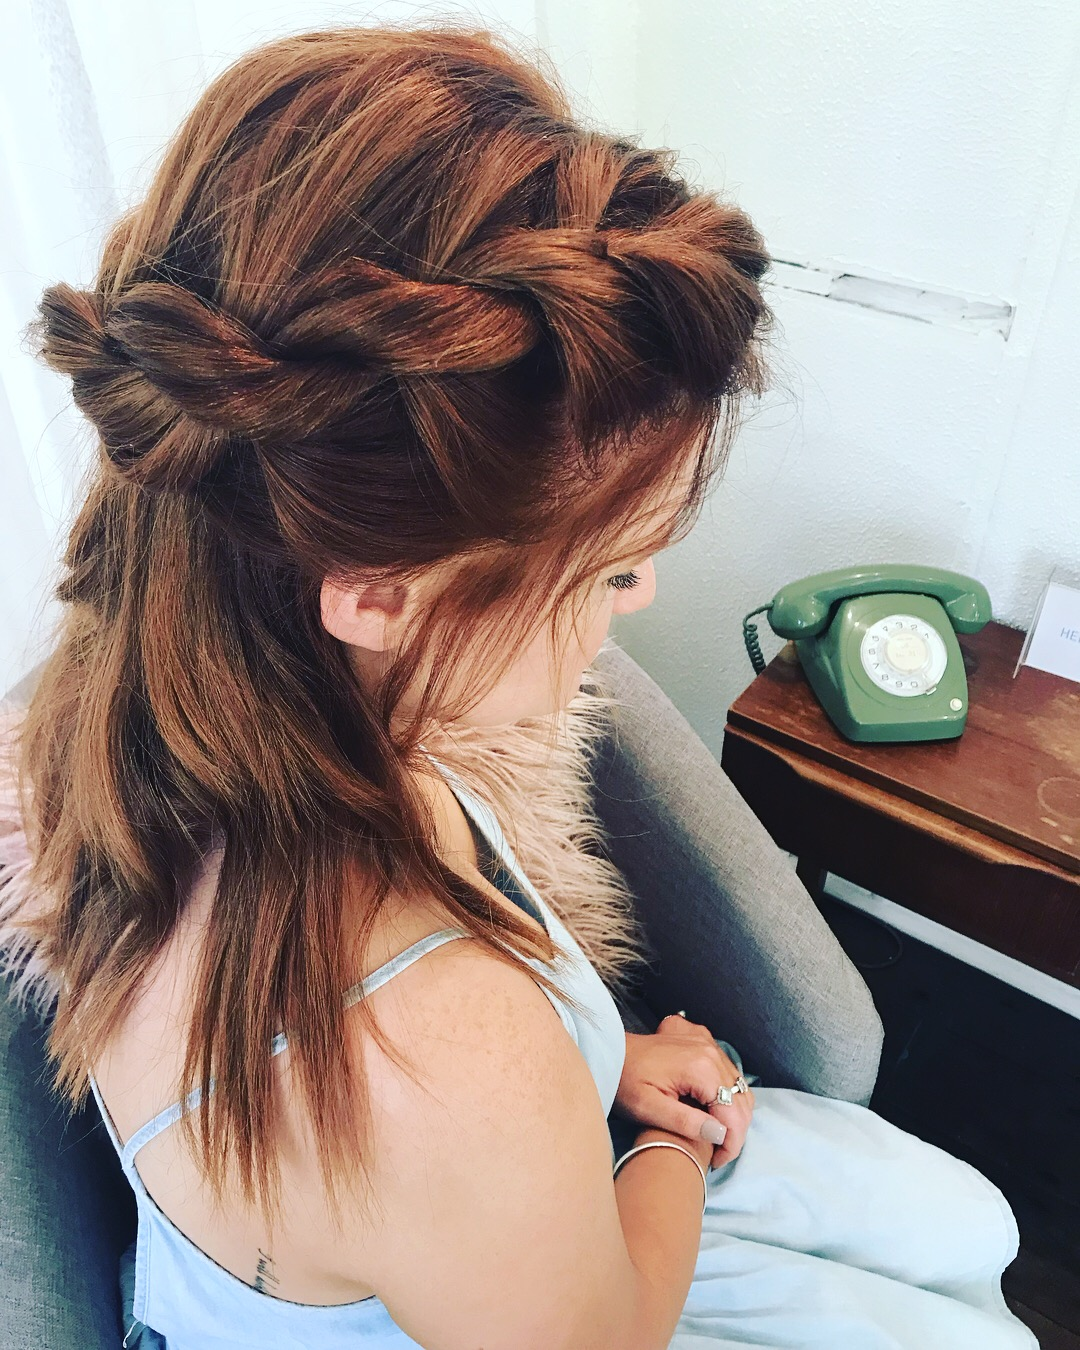 Hair Braiding Salon Australia Kellie Turner 12.JPG